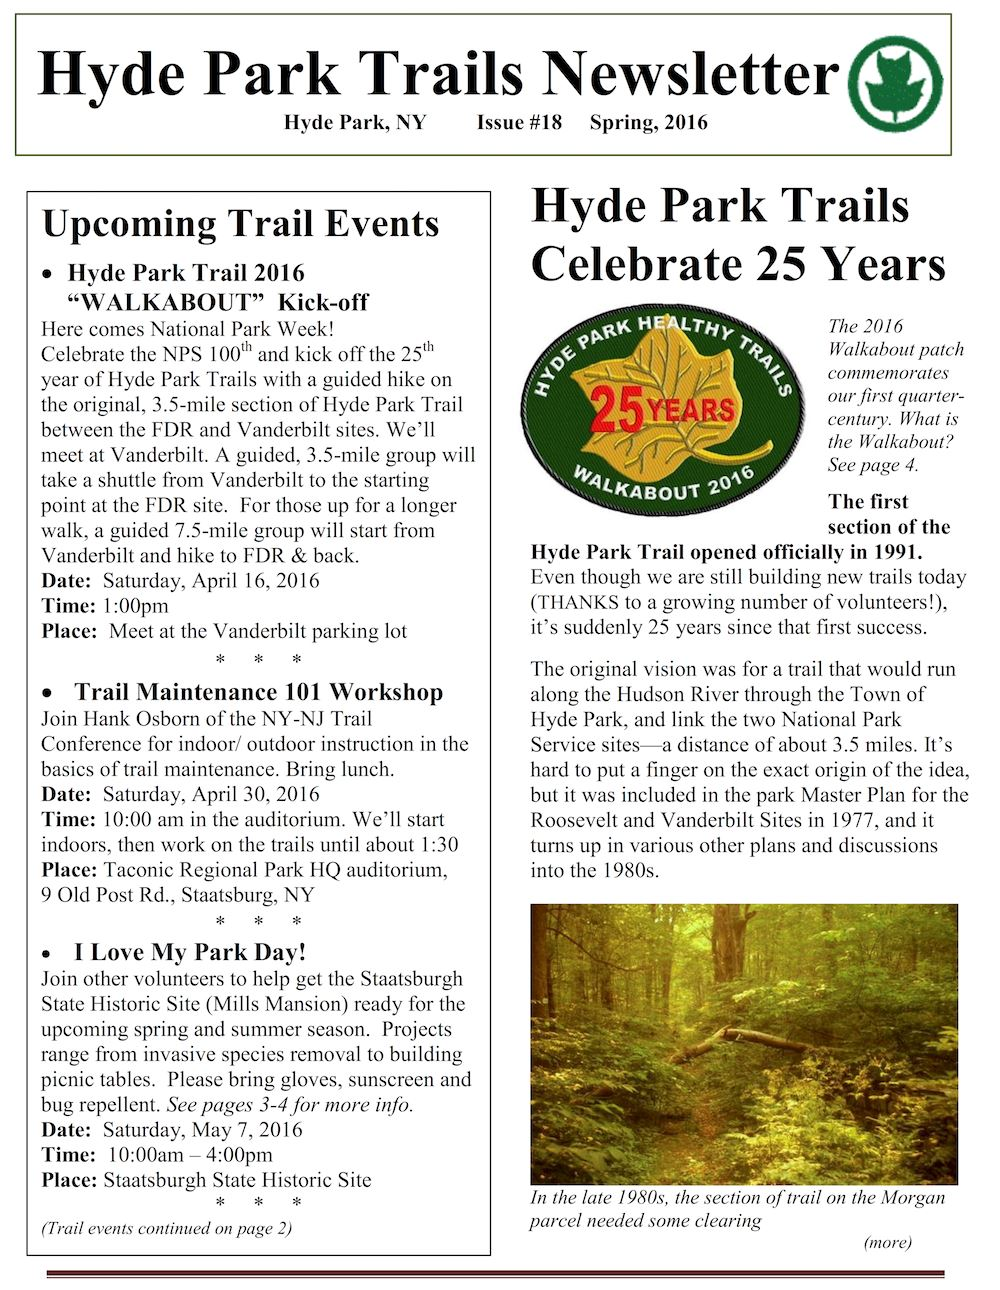 Hyde Park Trails Newsletter Sample Image